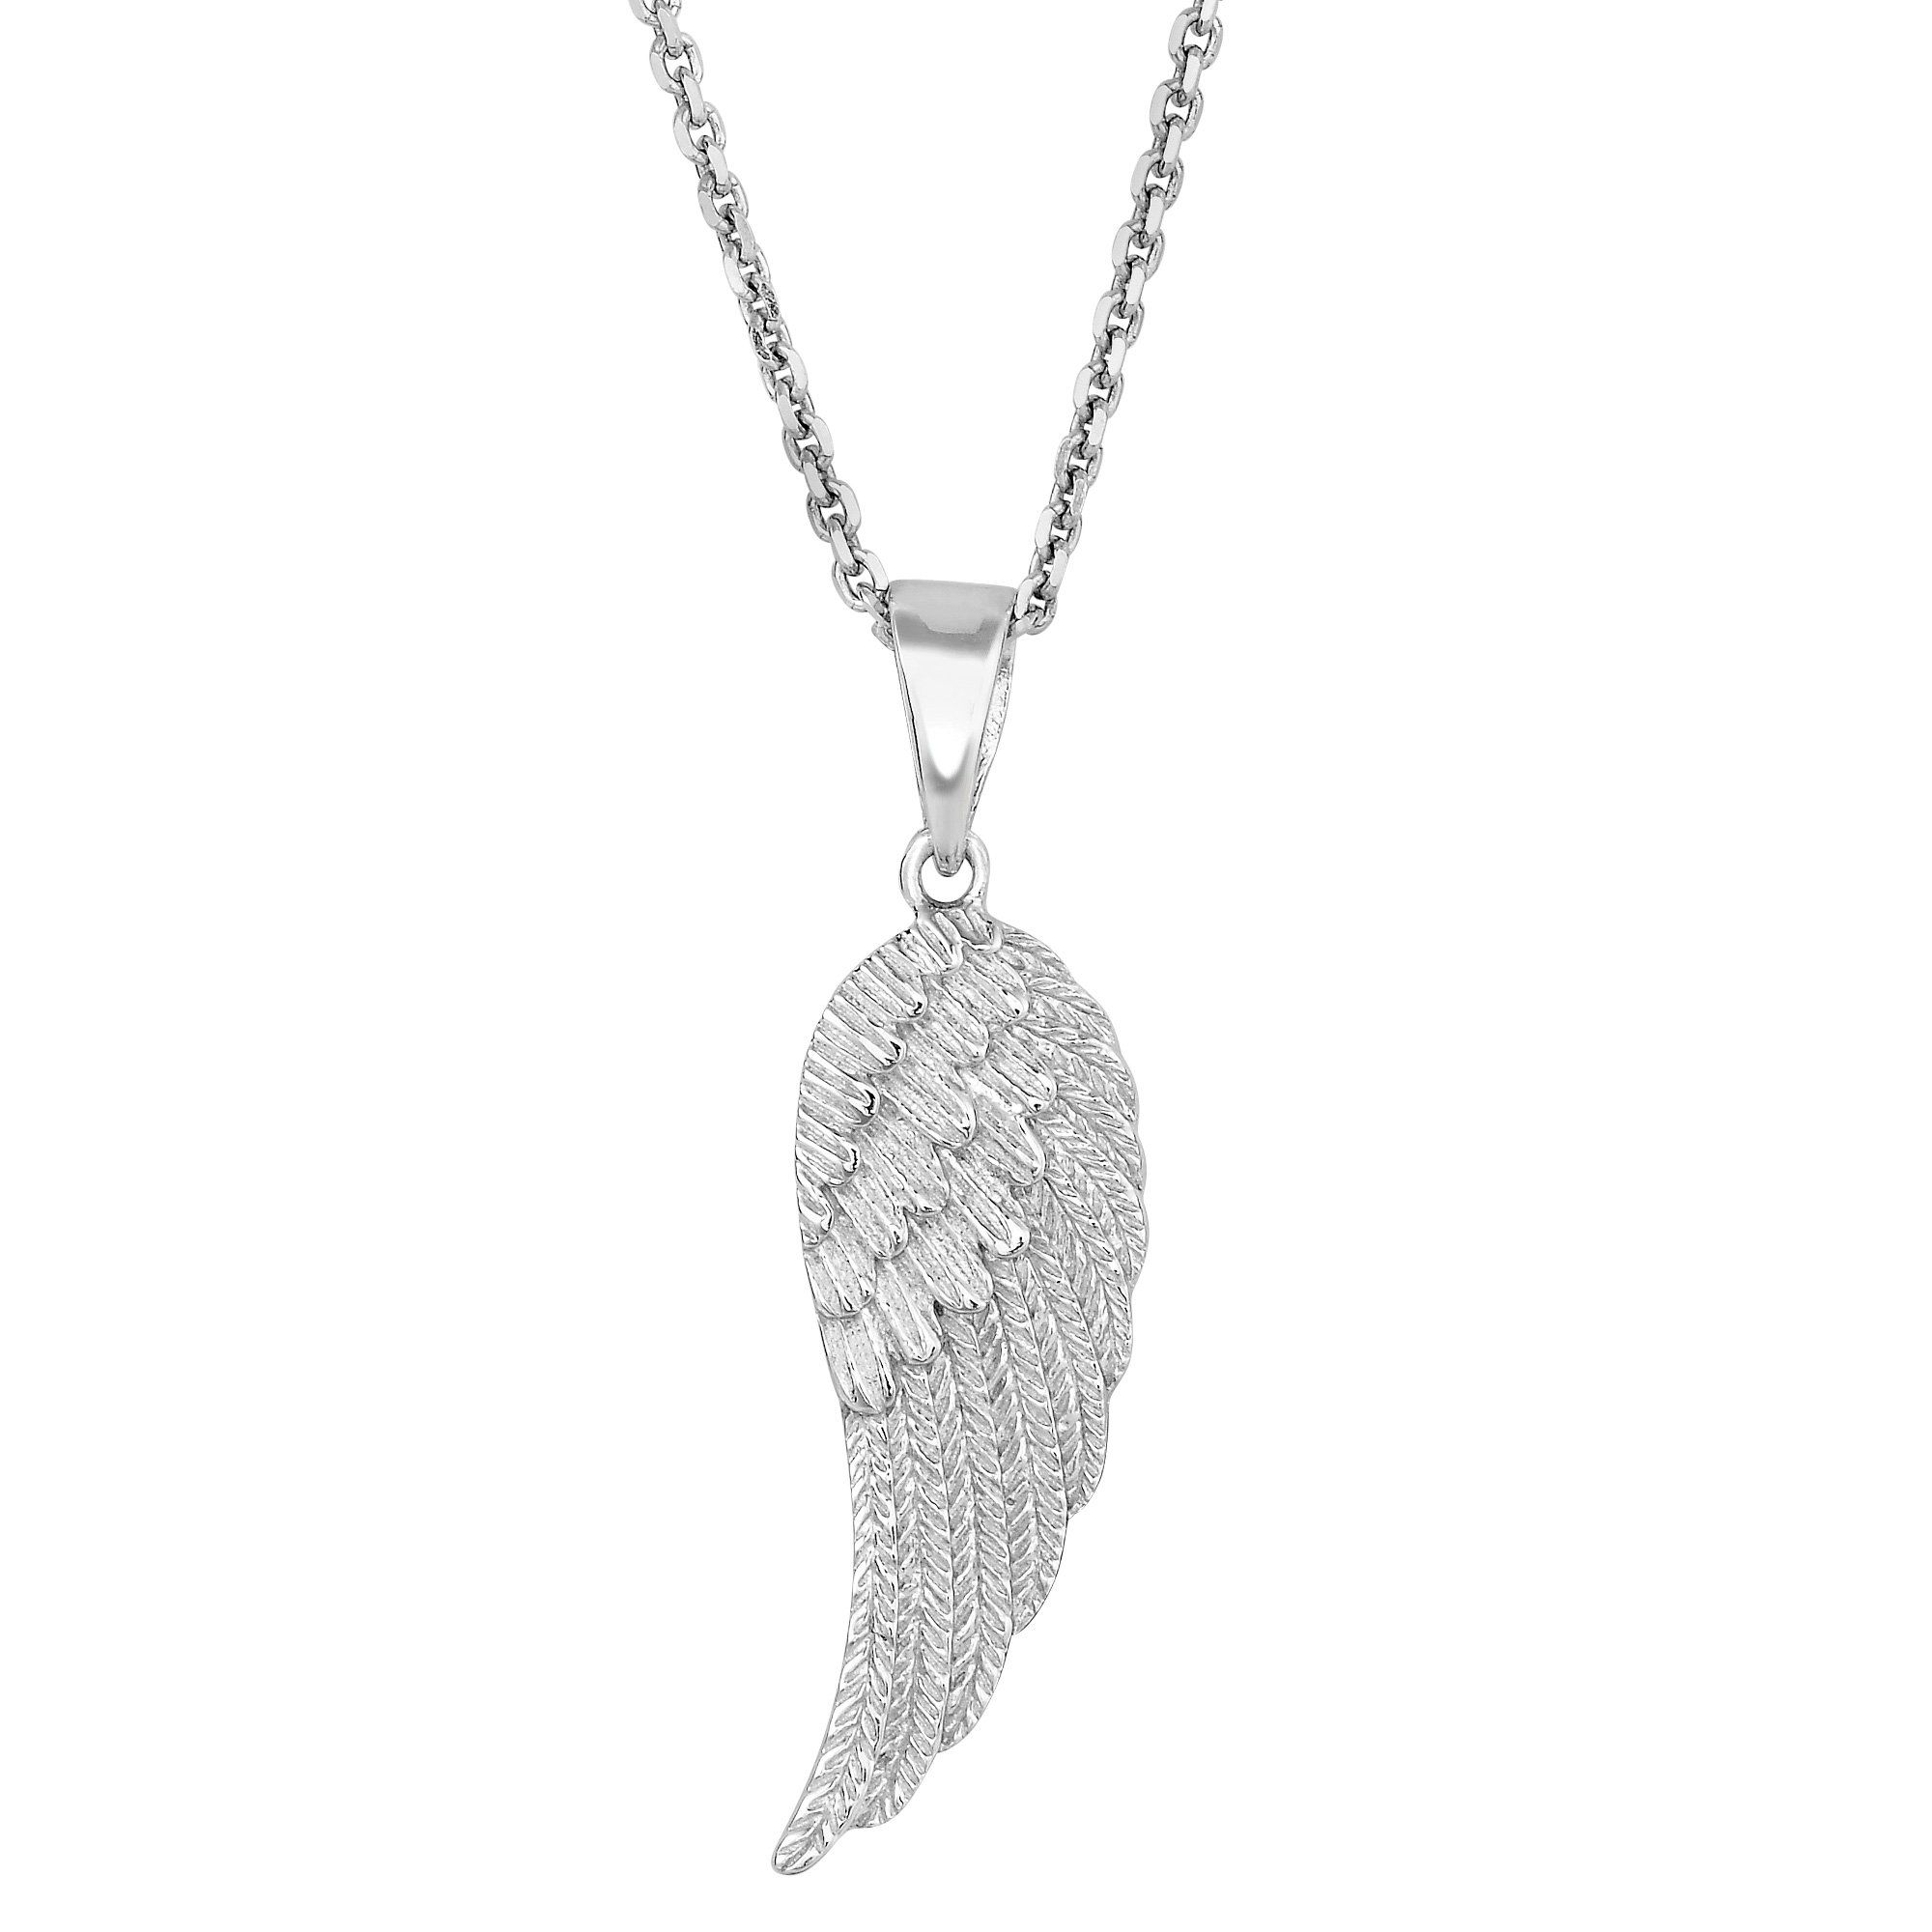 Beautifully Crafted Sterling Silver Angel Wings Pendant necklace Diamond Cut for more sparkle